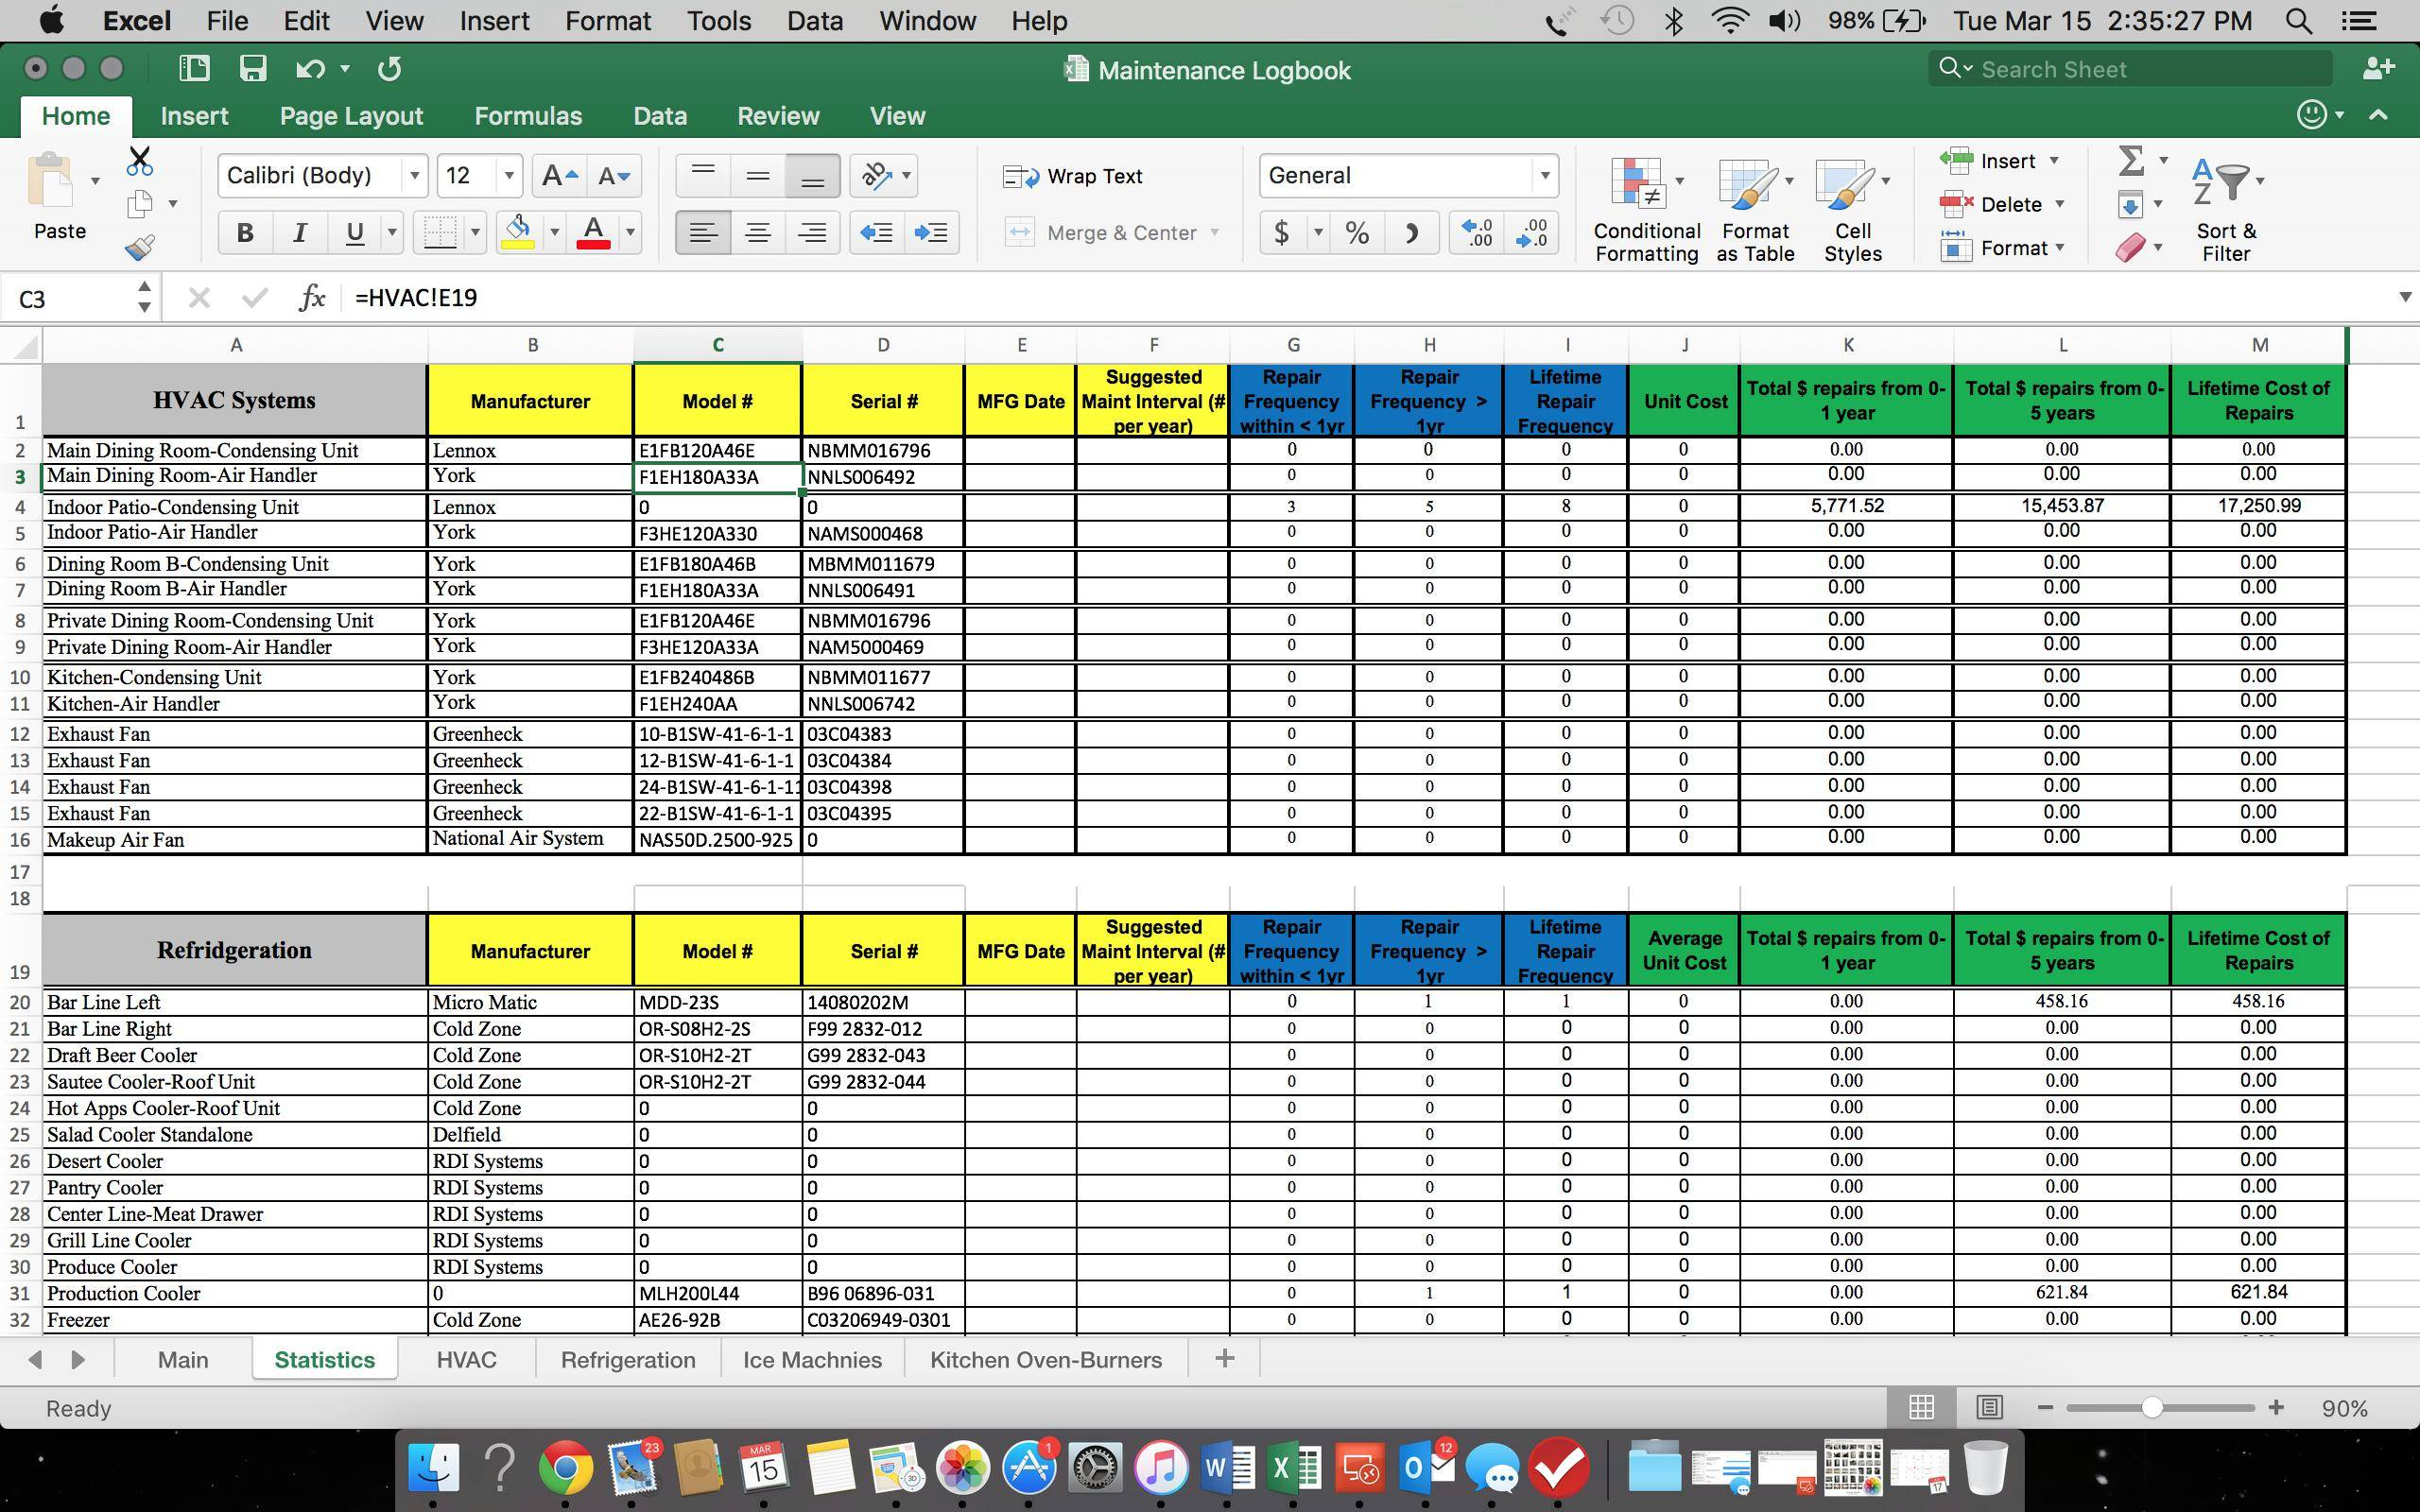 How To Add Another Page To Excel Spreadsheet